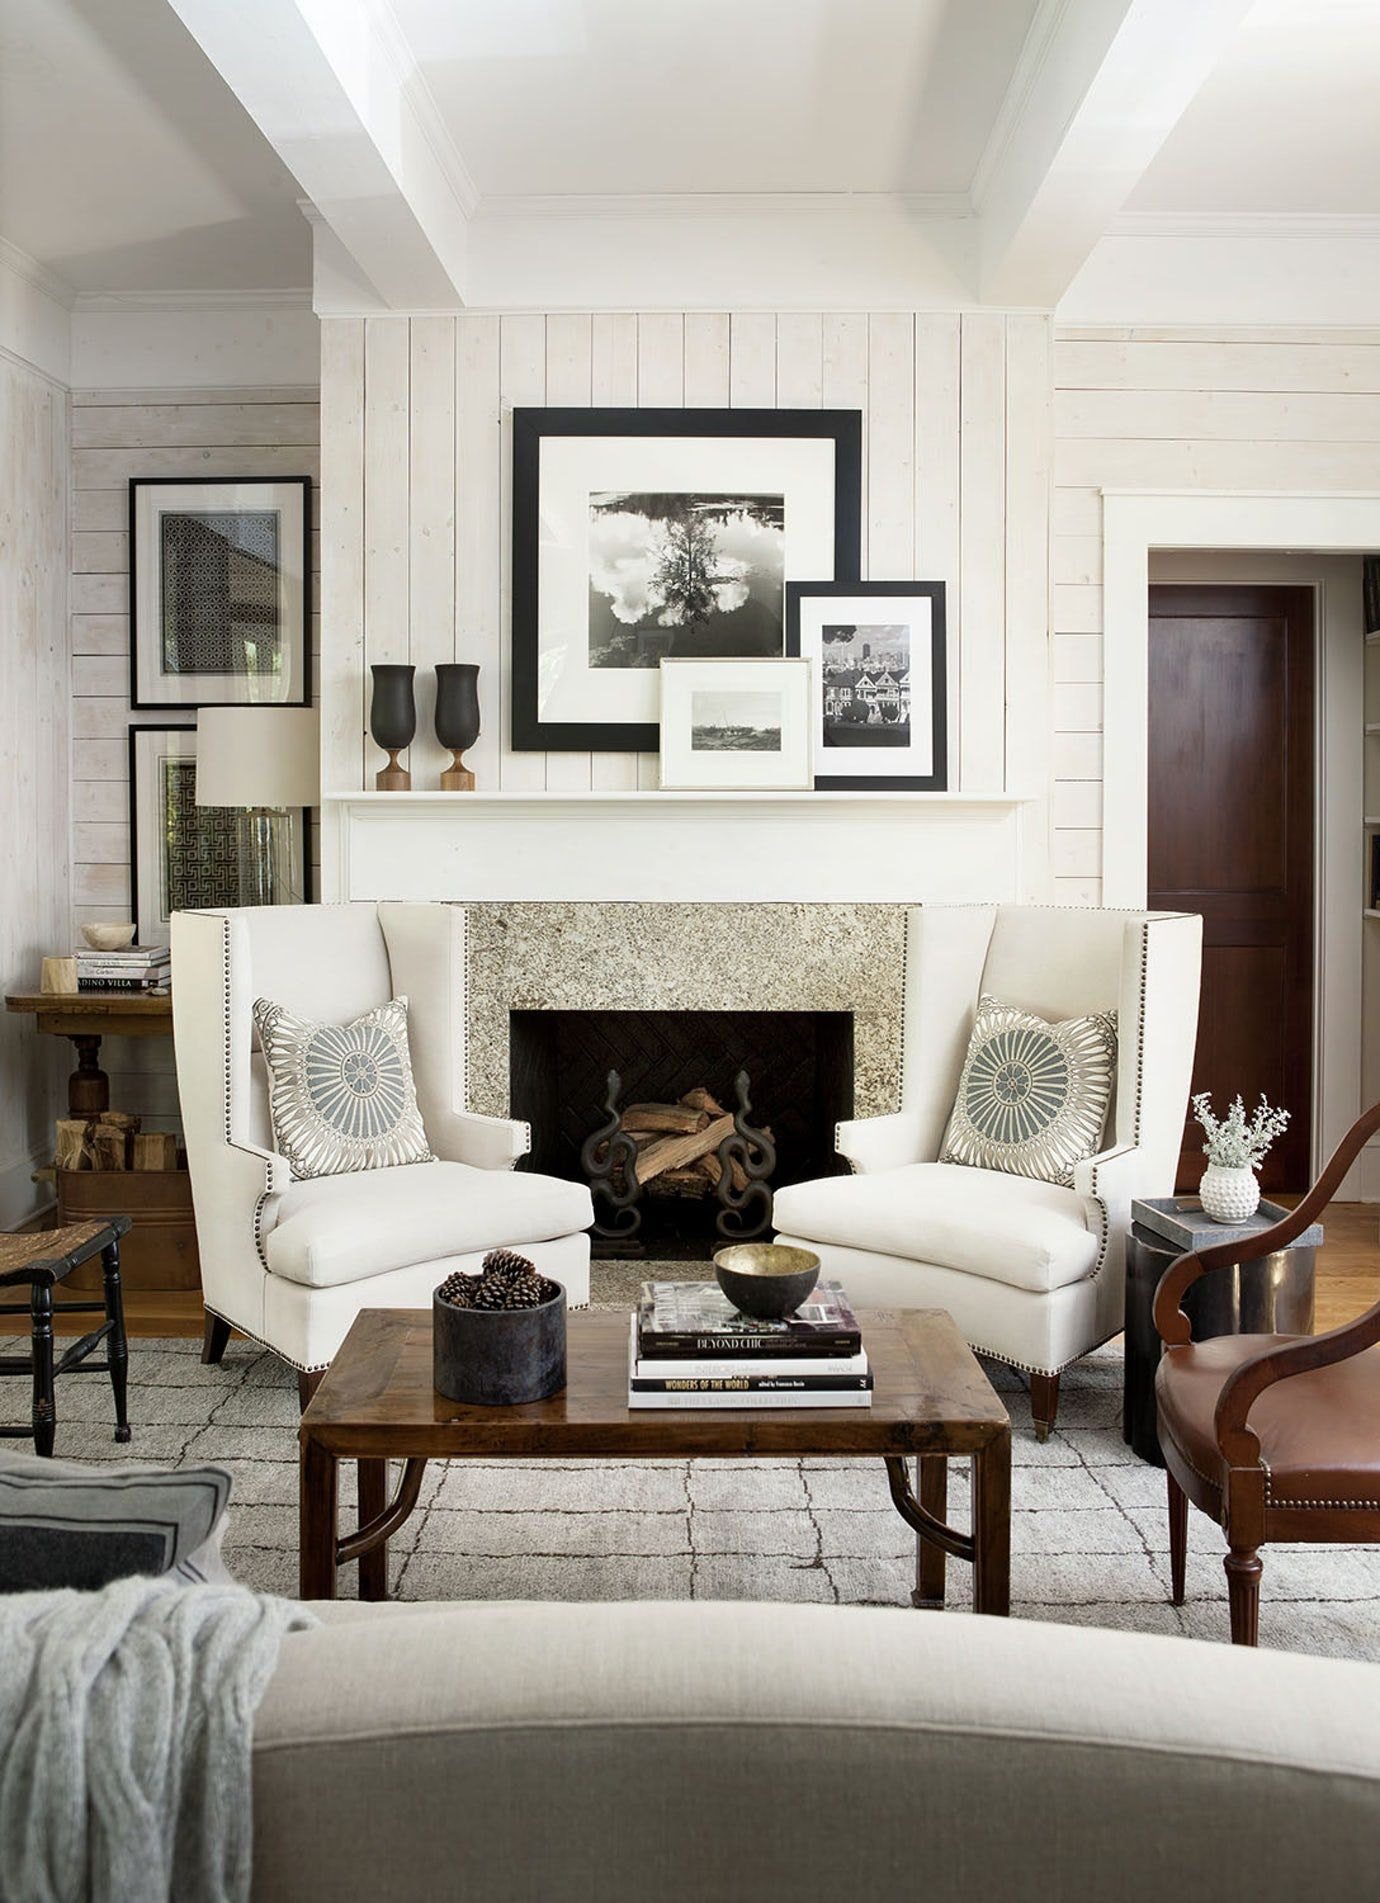 Gray And White Transitional Rustic Living Room With: Lake House Great Room Living Family Room Media Rustic